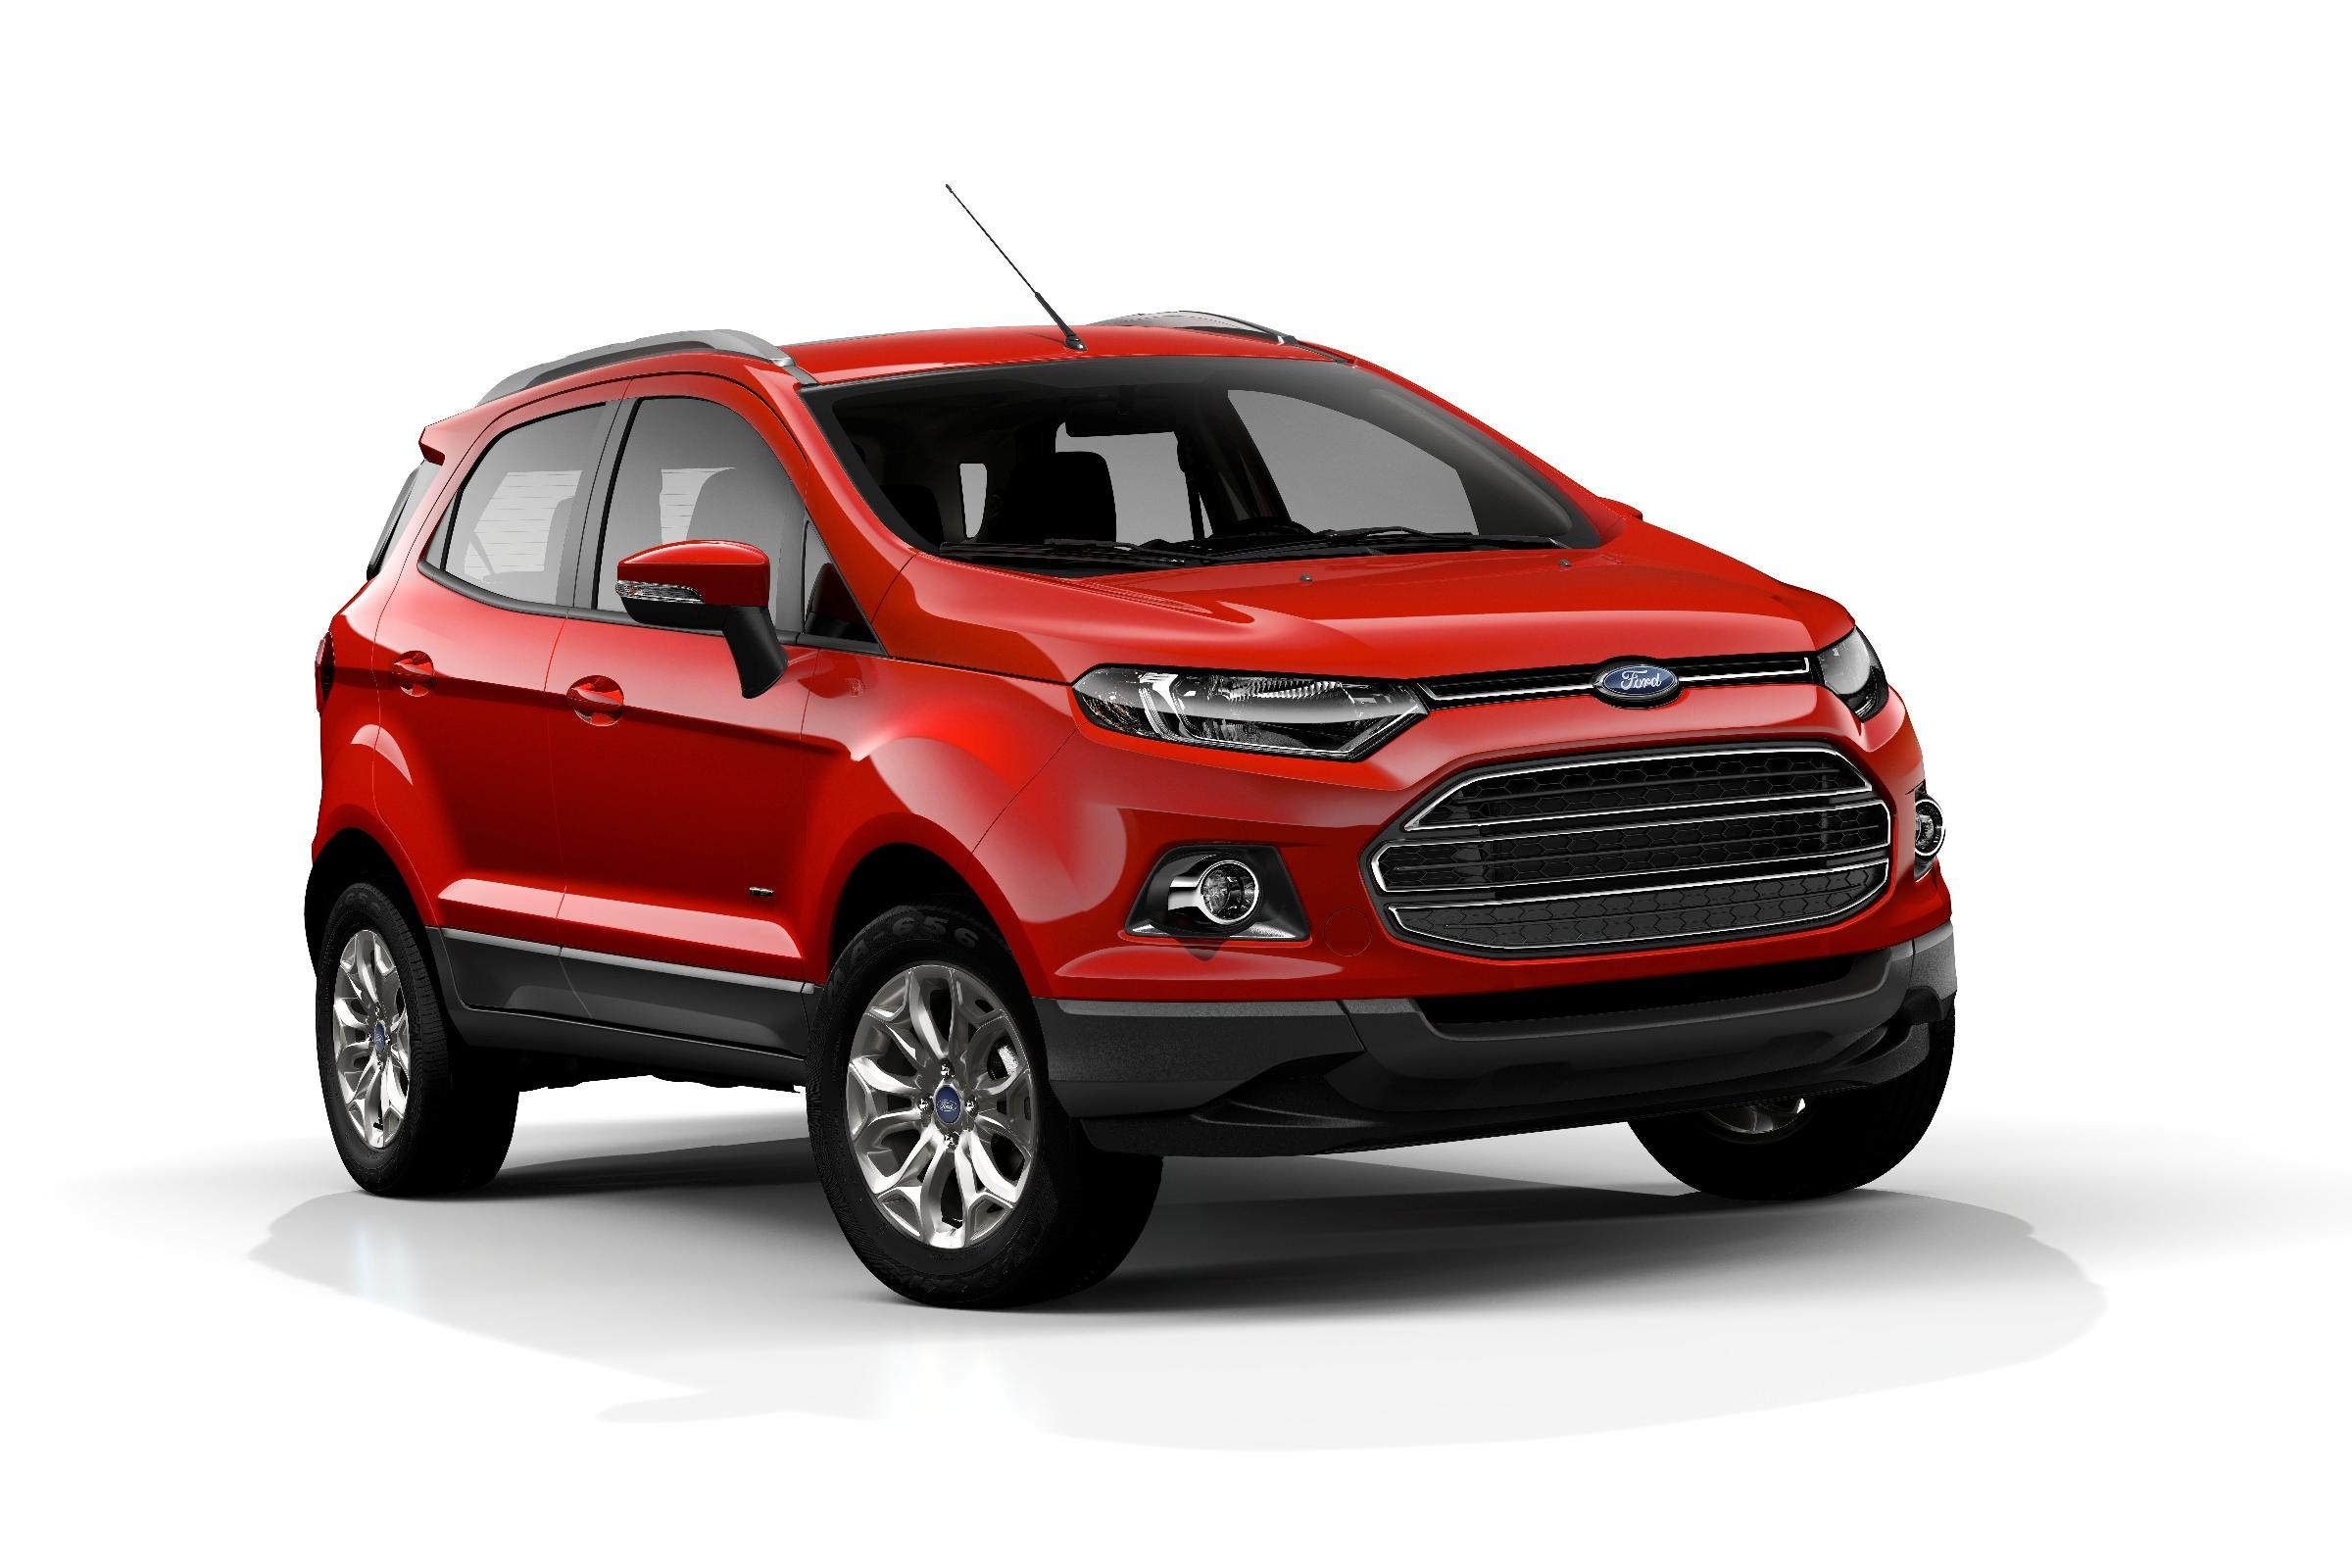 Ford Ecosport Suv Makes Debut In Paris